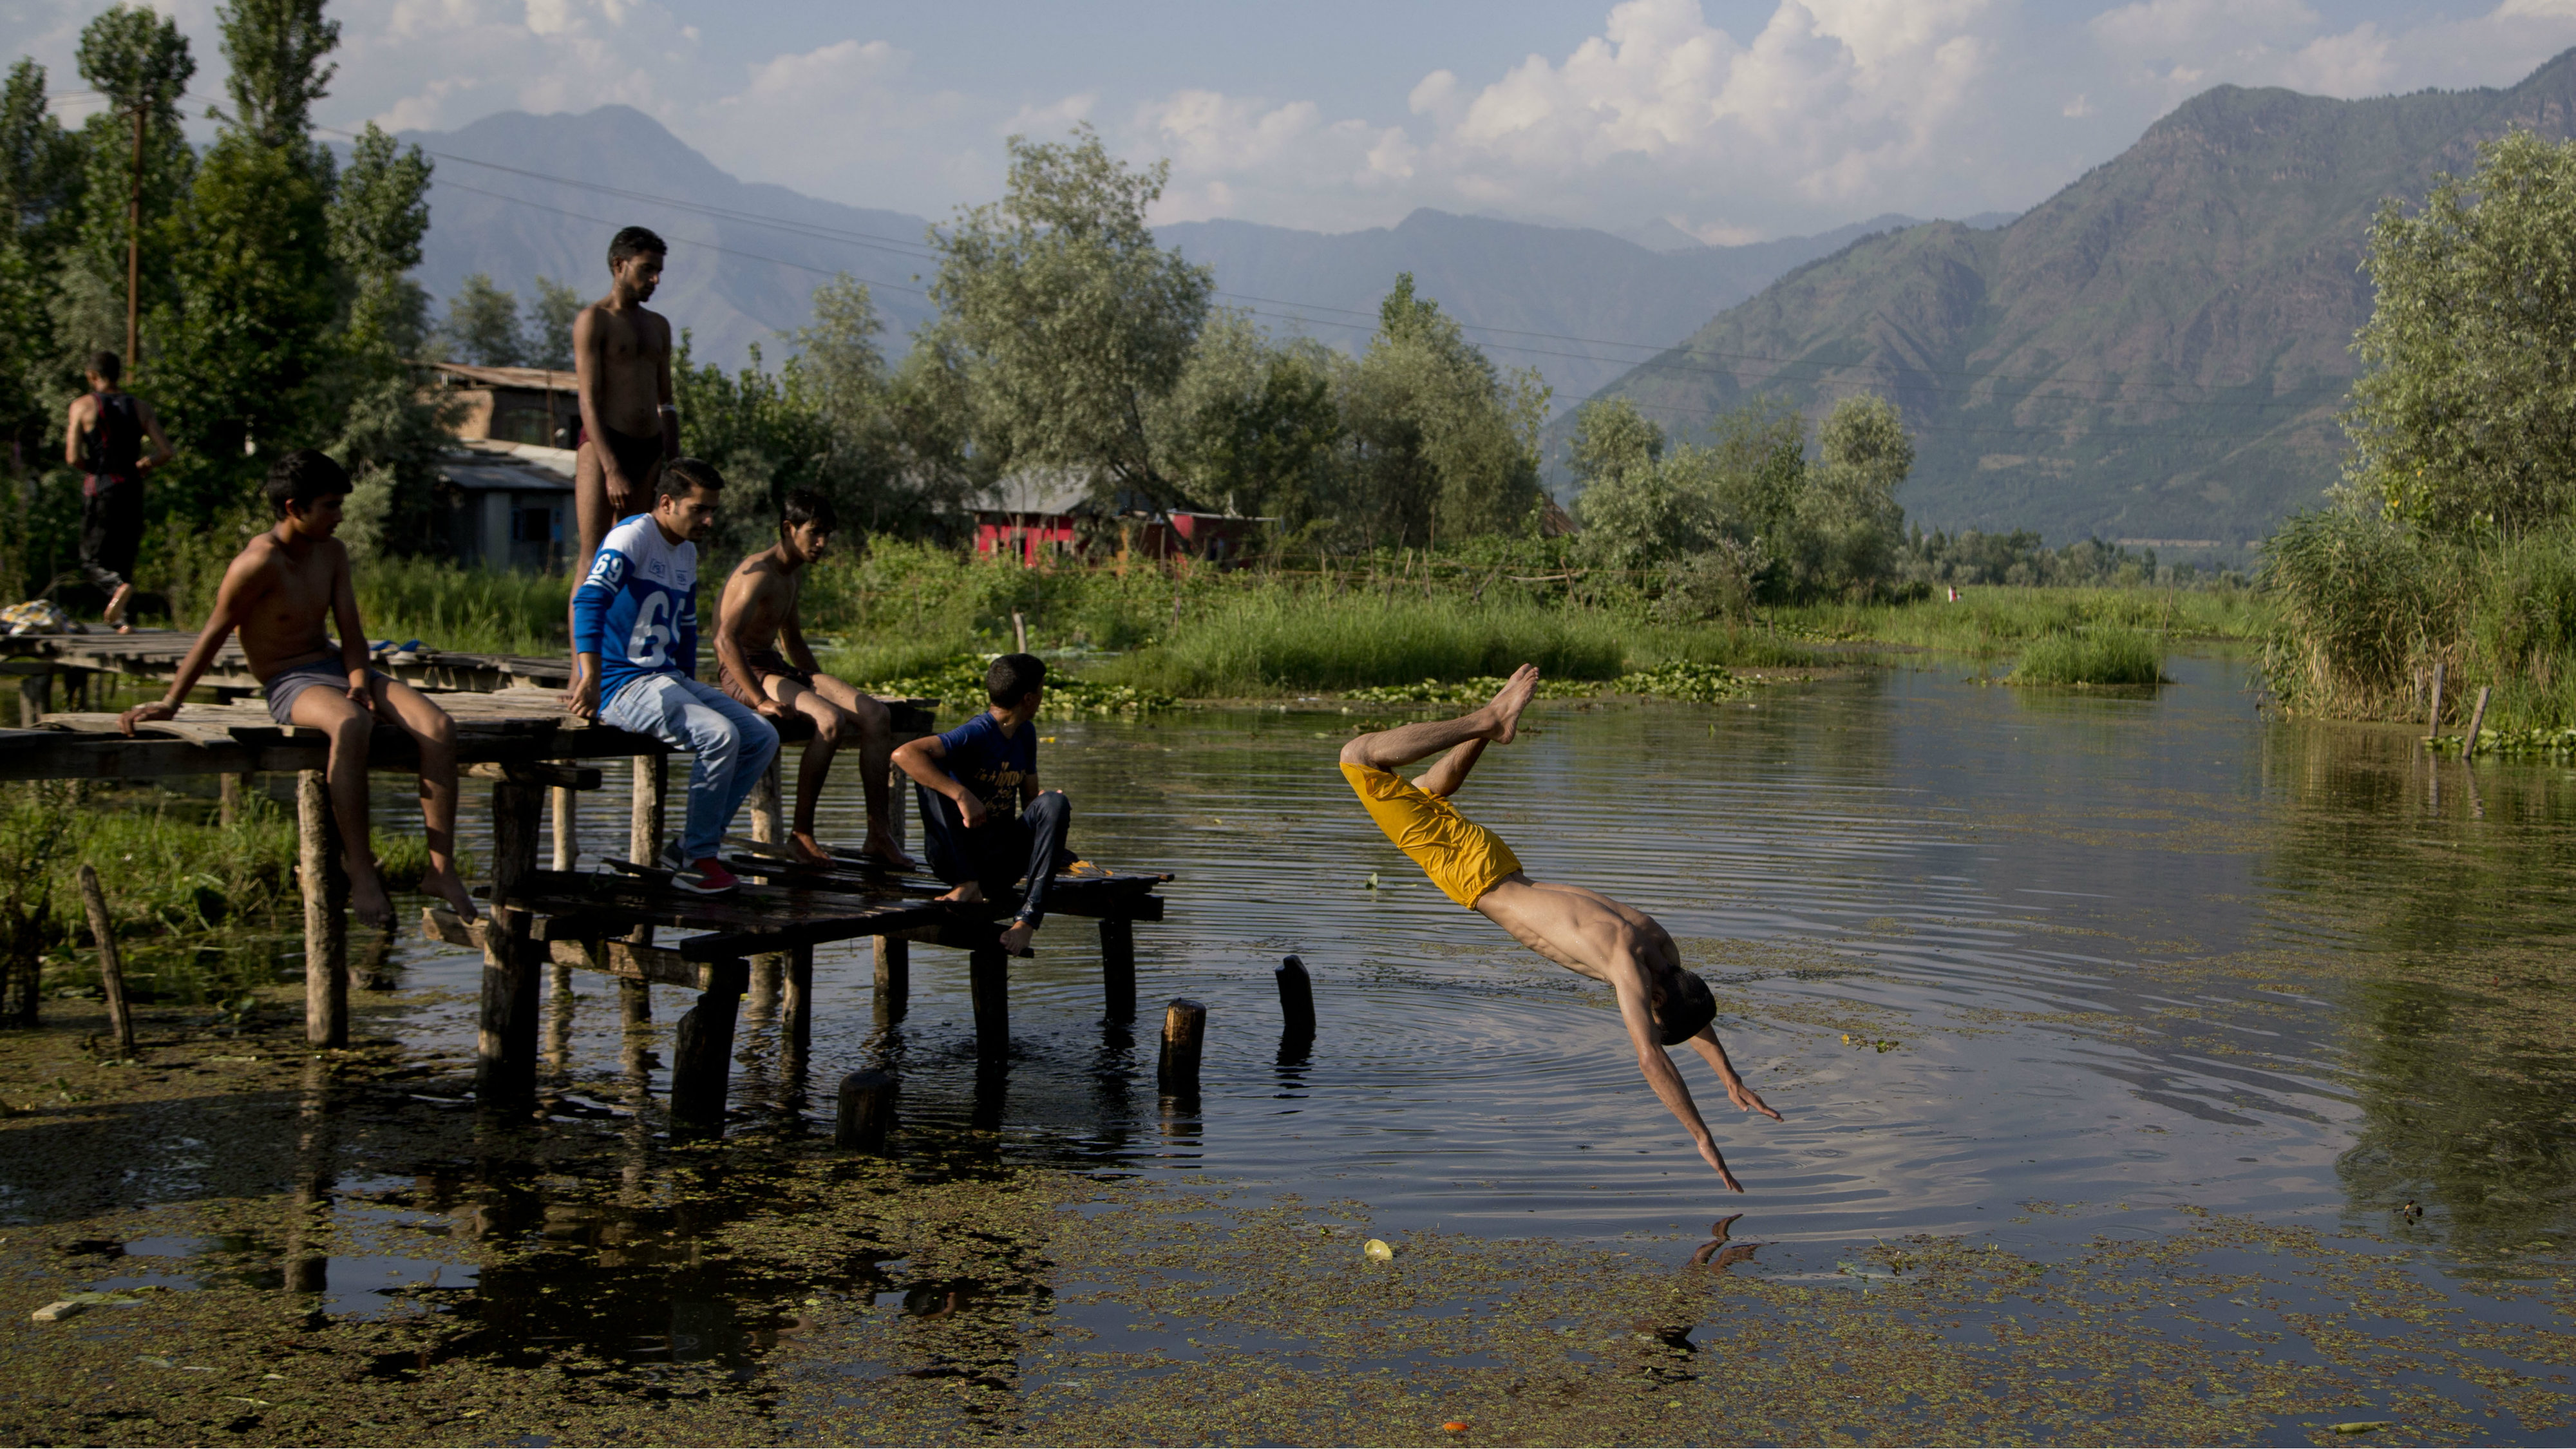 A Kashmiri boy dives into the Dal Lake in Srinagar, Indian controlled Kashmir, Thursday, June 30, 2016. Nestled in the Himalayan mountains and known for its beautiful lakes and saucer-shaped valleys, the Indian portion of Kashmir, is also one of the most militarized places on earth.